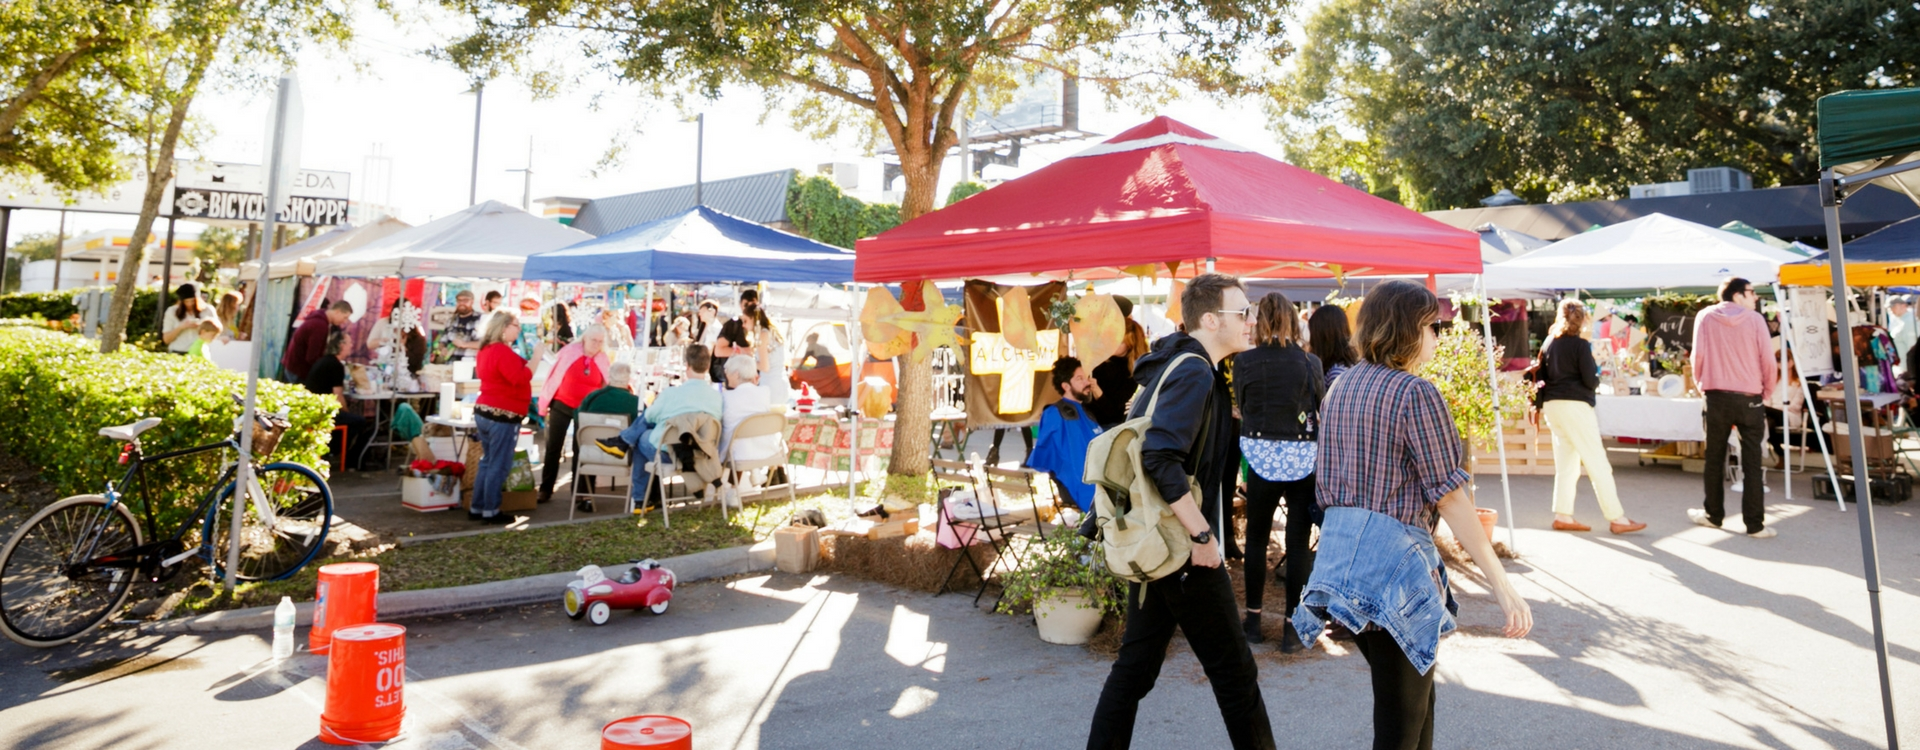 open air market at stardust